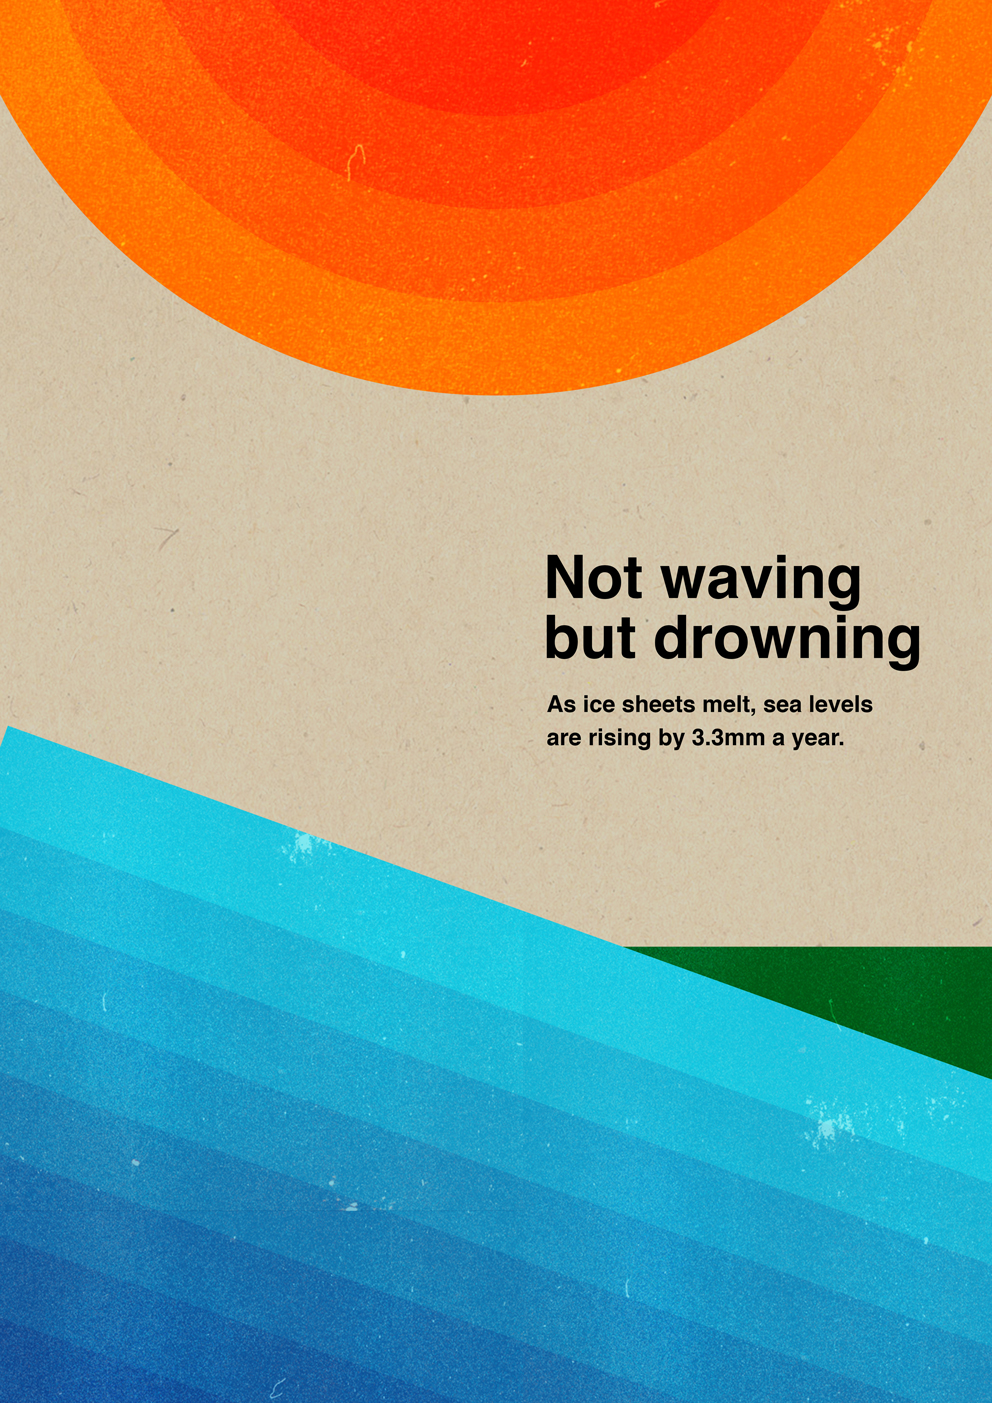 climate-change-poster-2